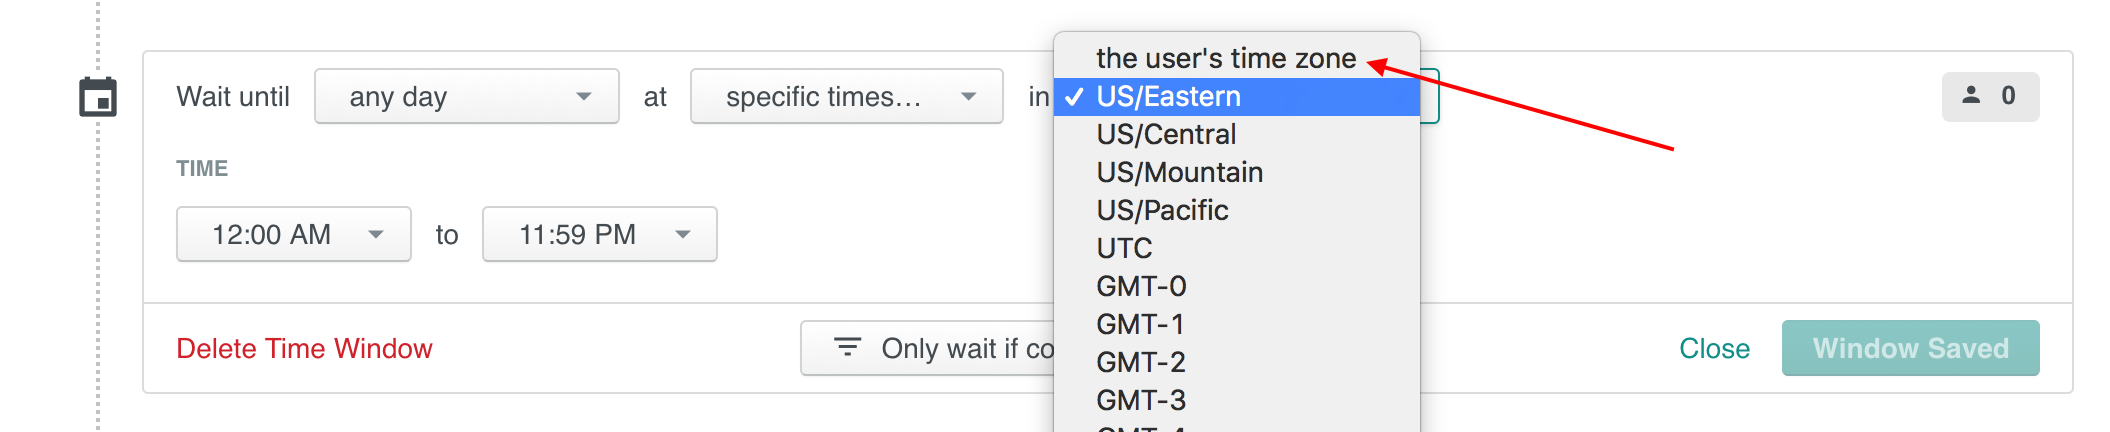 Select the user's time zone, instead of one time zone for everyone!